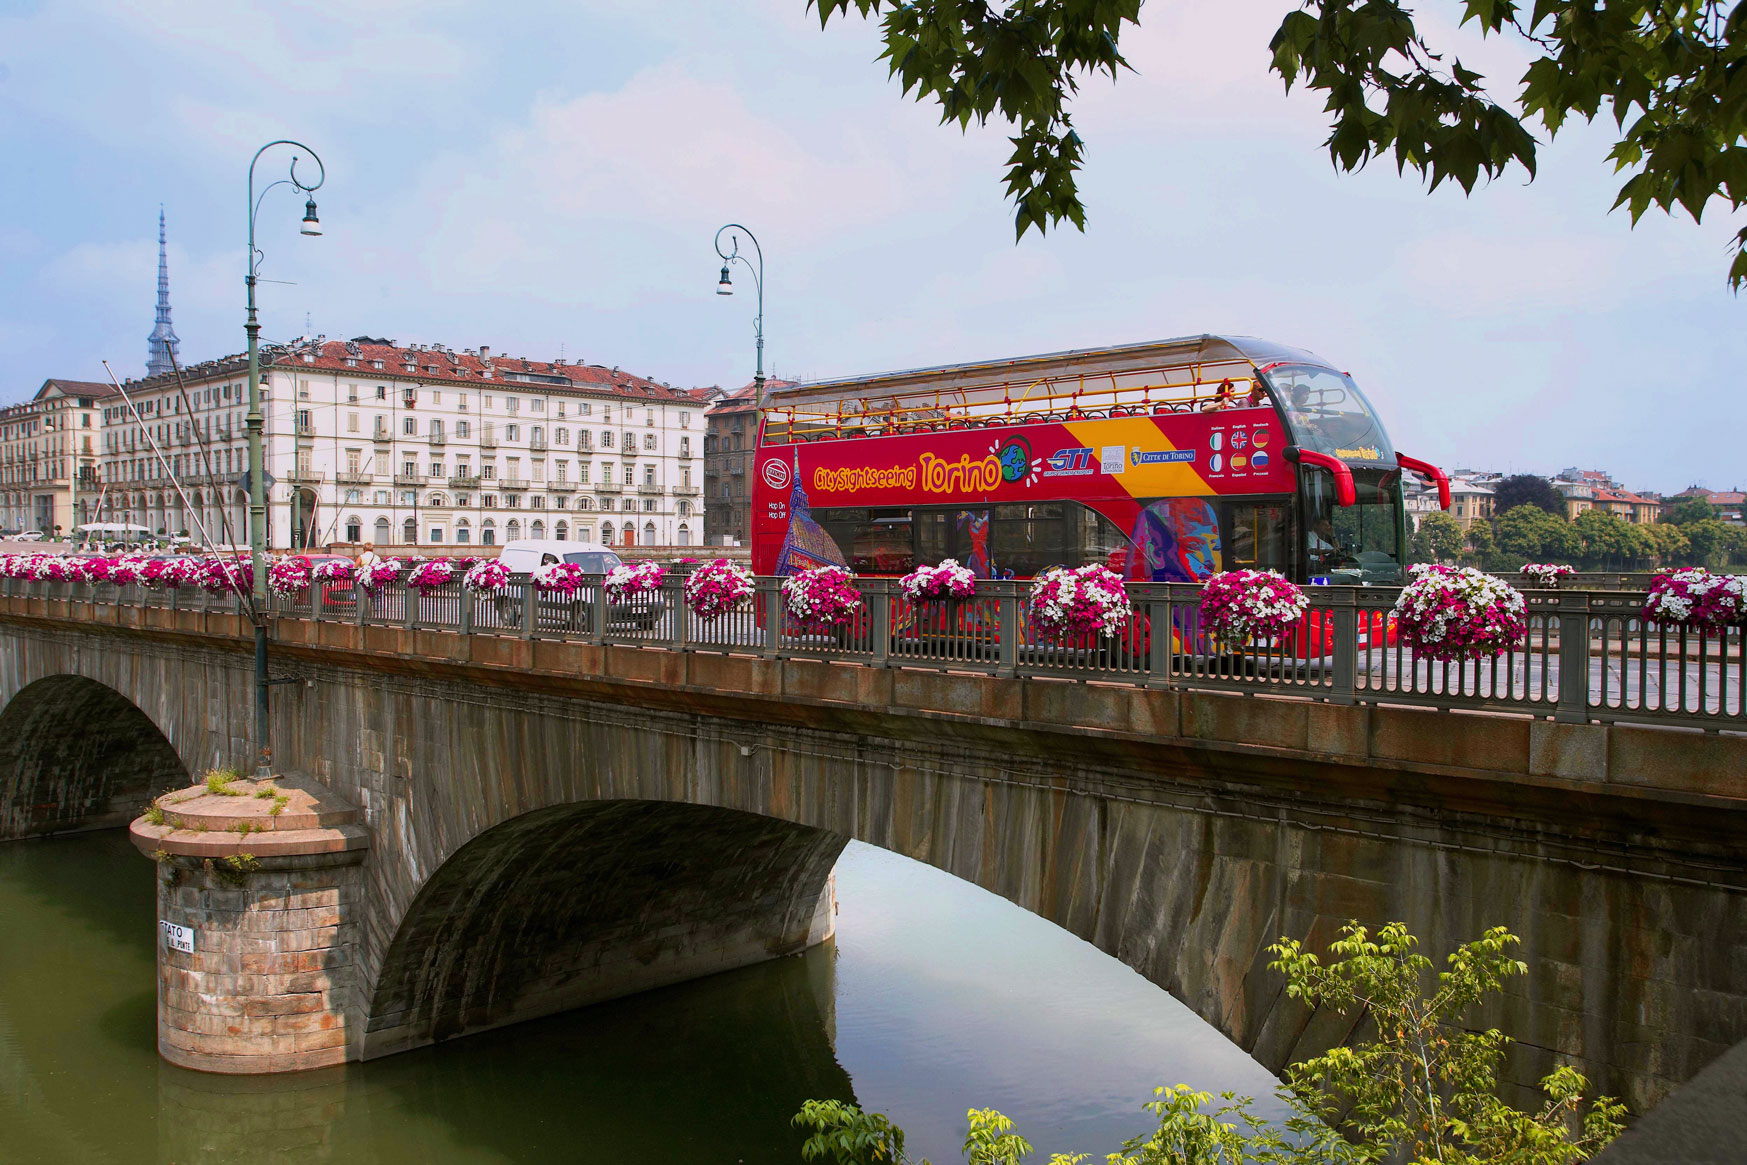 City Sightseeing: visita di Torino